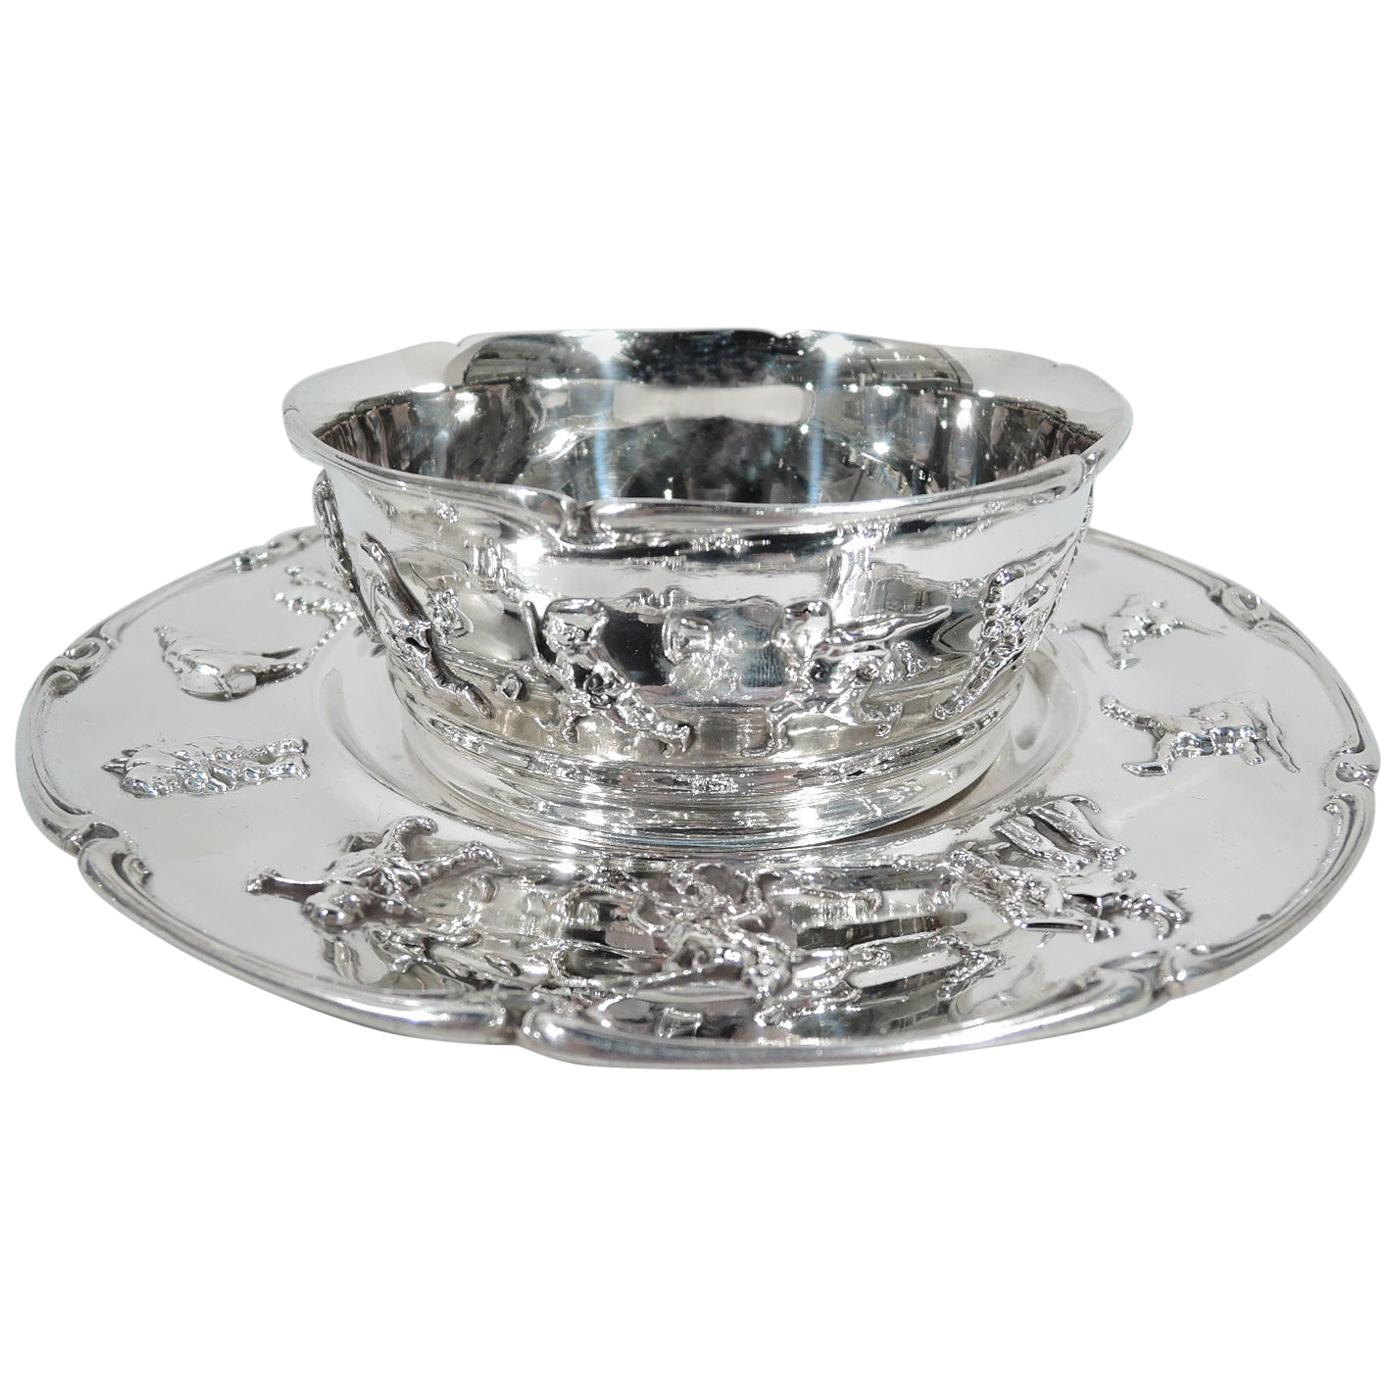 Antique Gorham Sterling Silver Baby Cereal Bowl on Plate